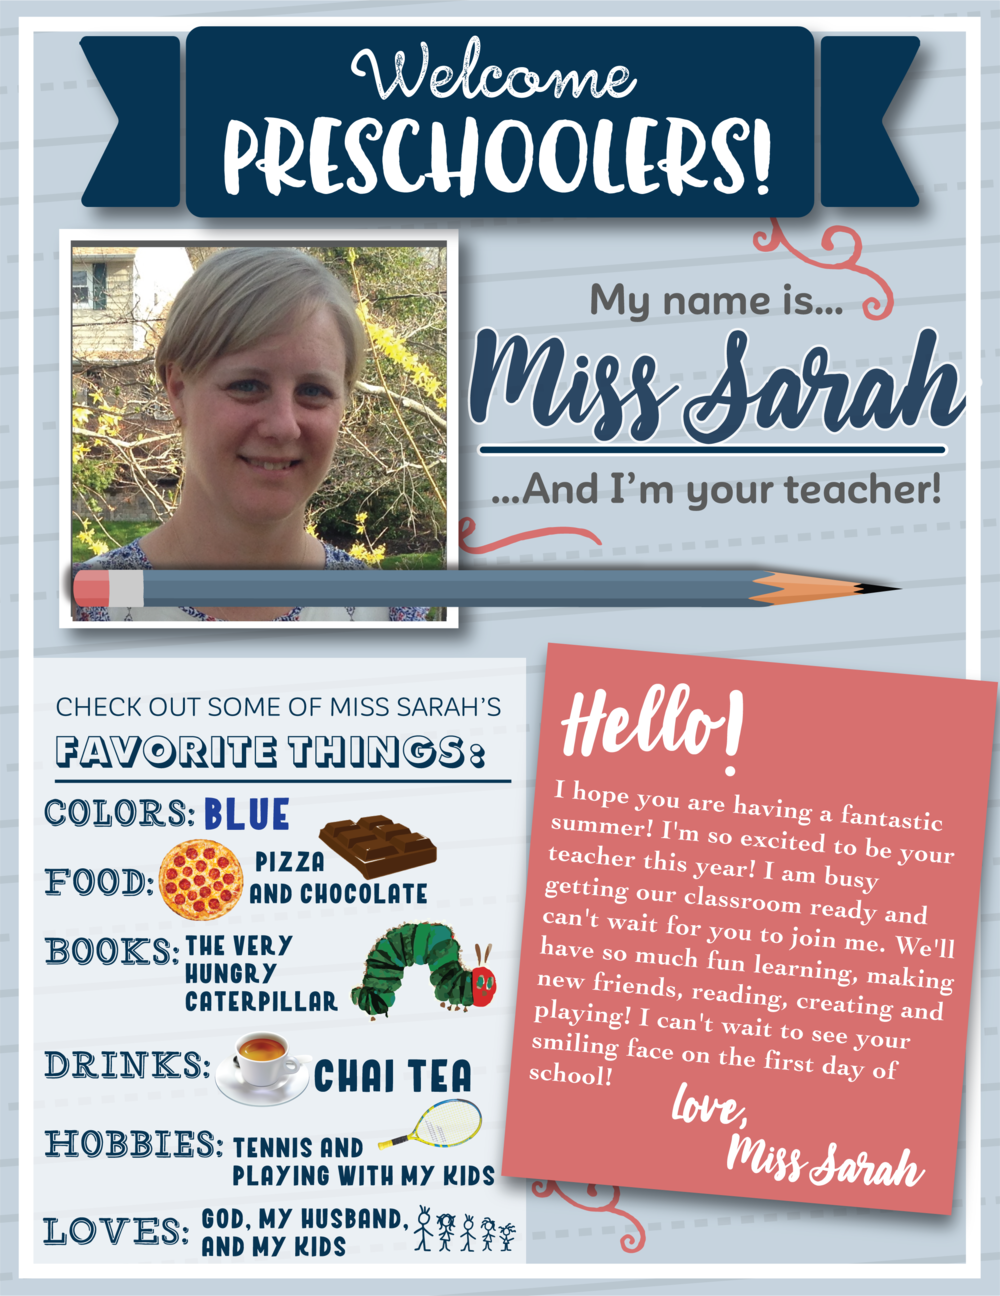 faith preschool - teachers_sarah intro.png